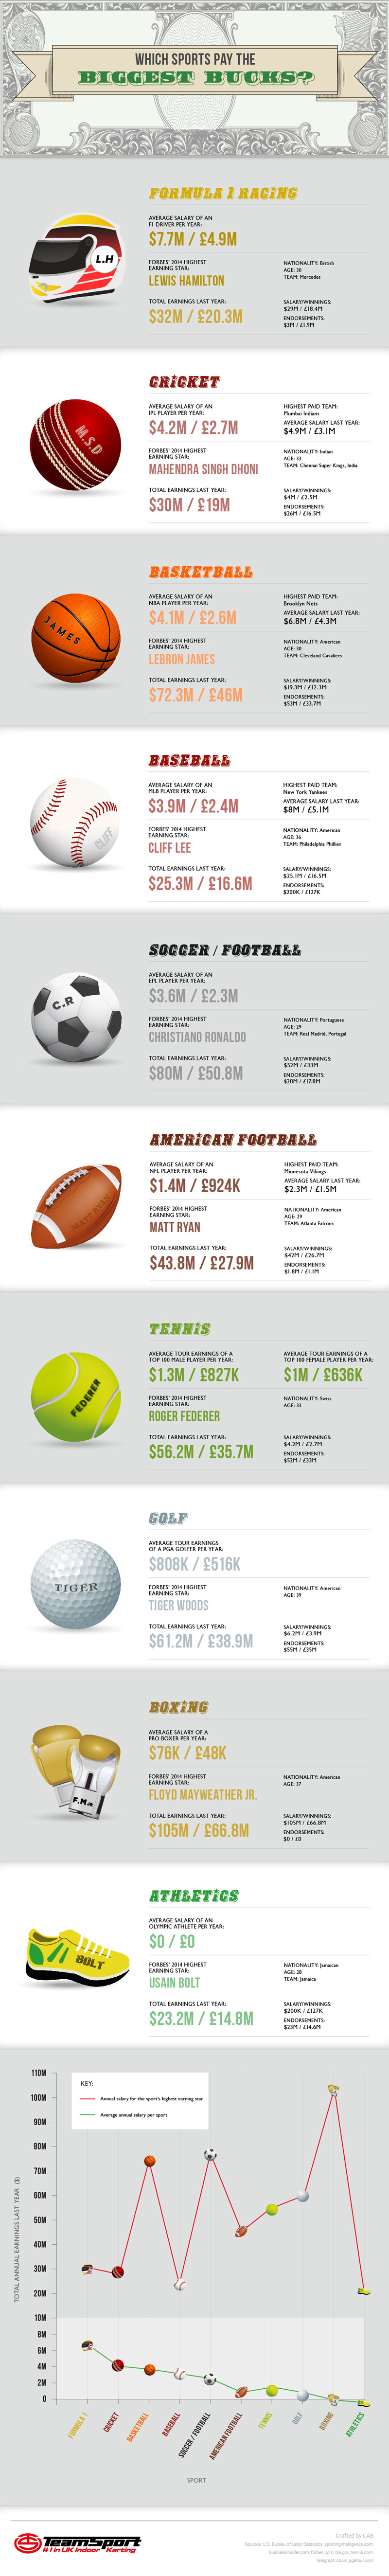 Which Sports Pay The Biggest Bucks